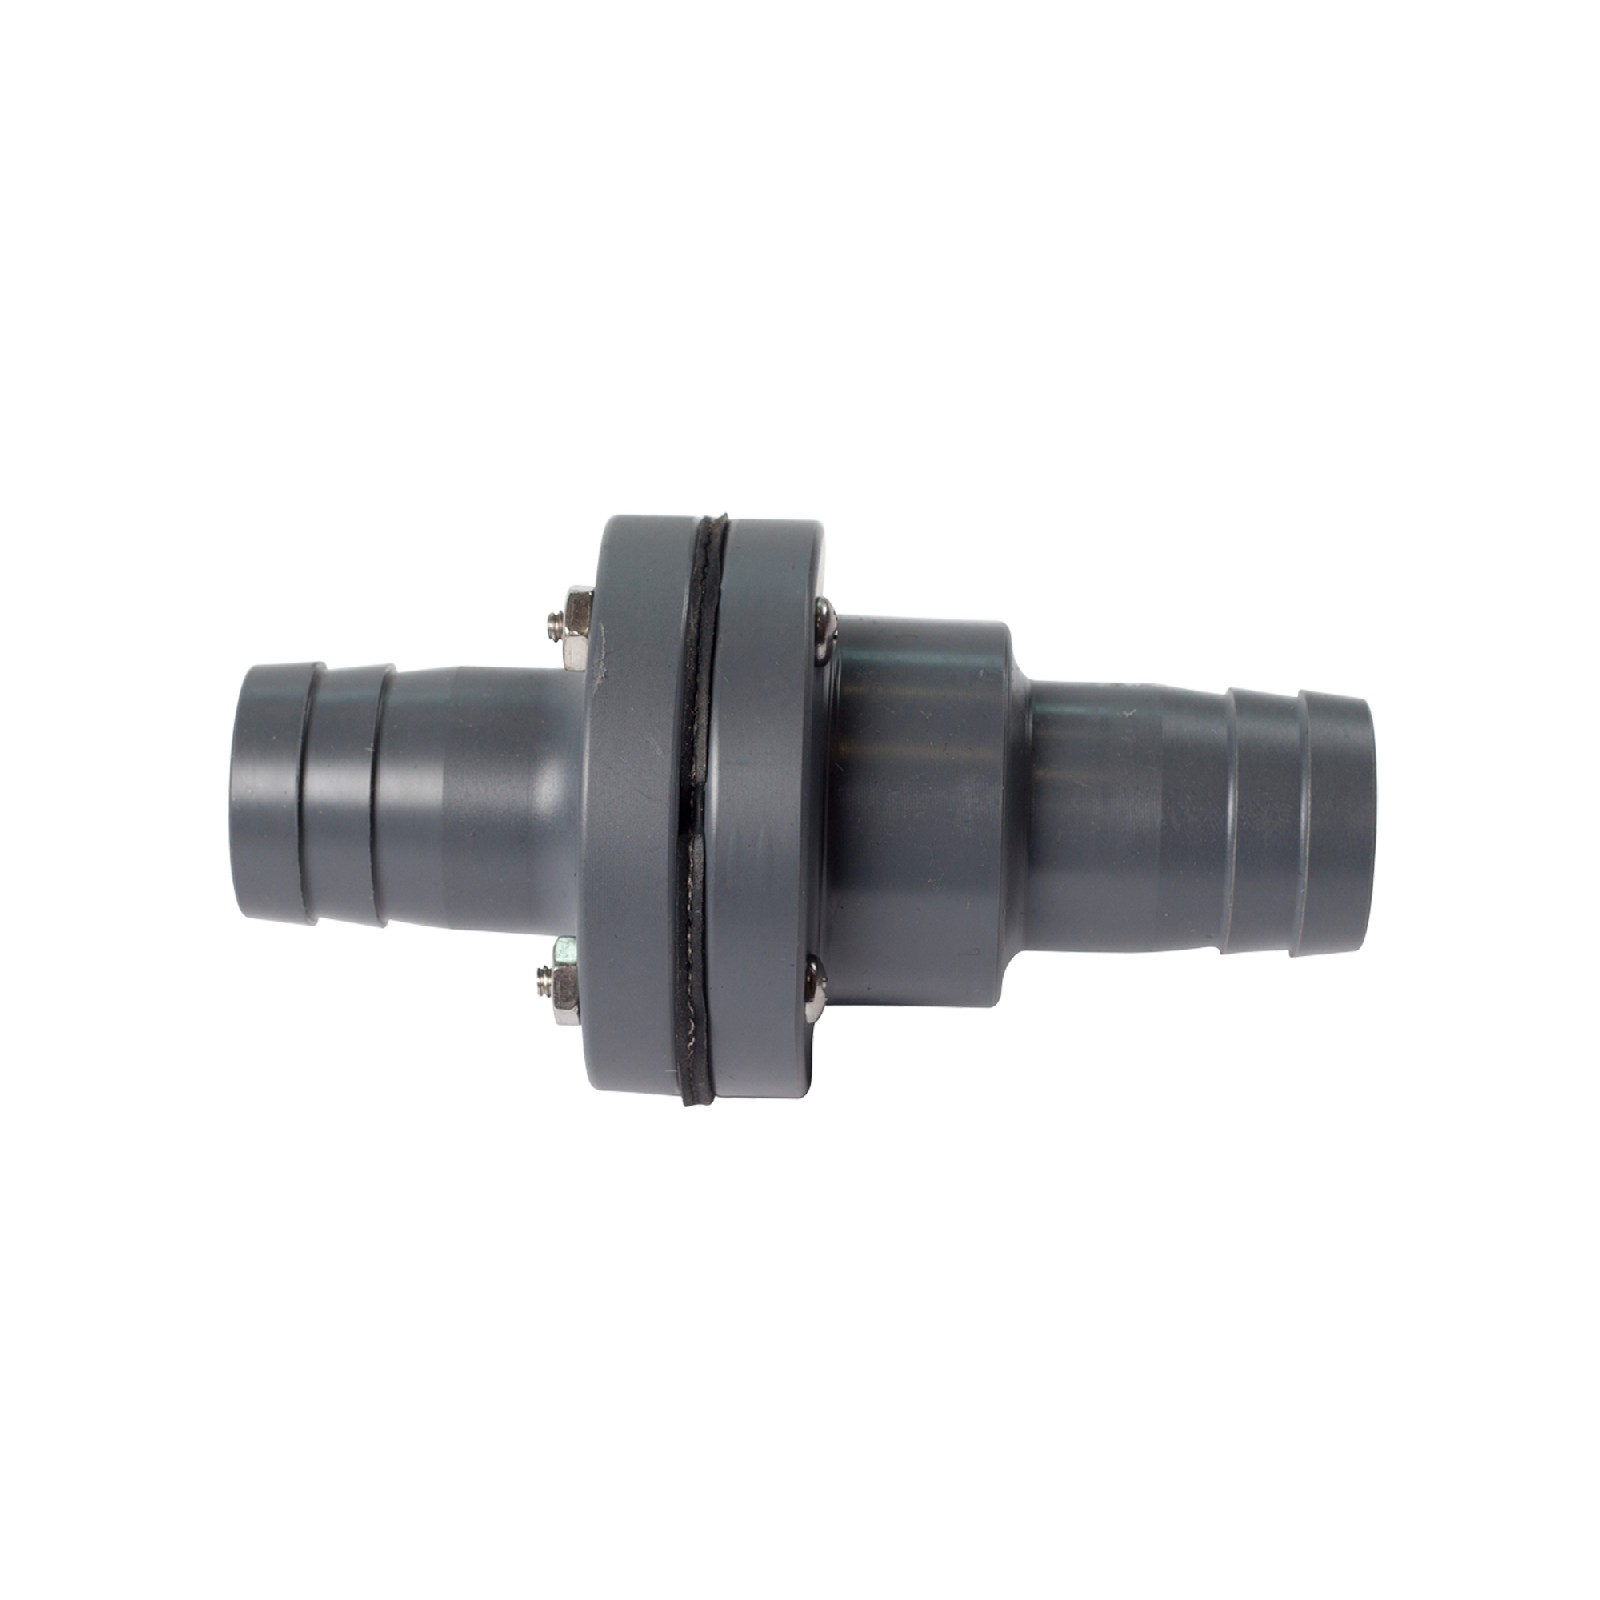 1 1/8'' BARBED IN-LINE CHECK VALVE FATSAC 2018